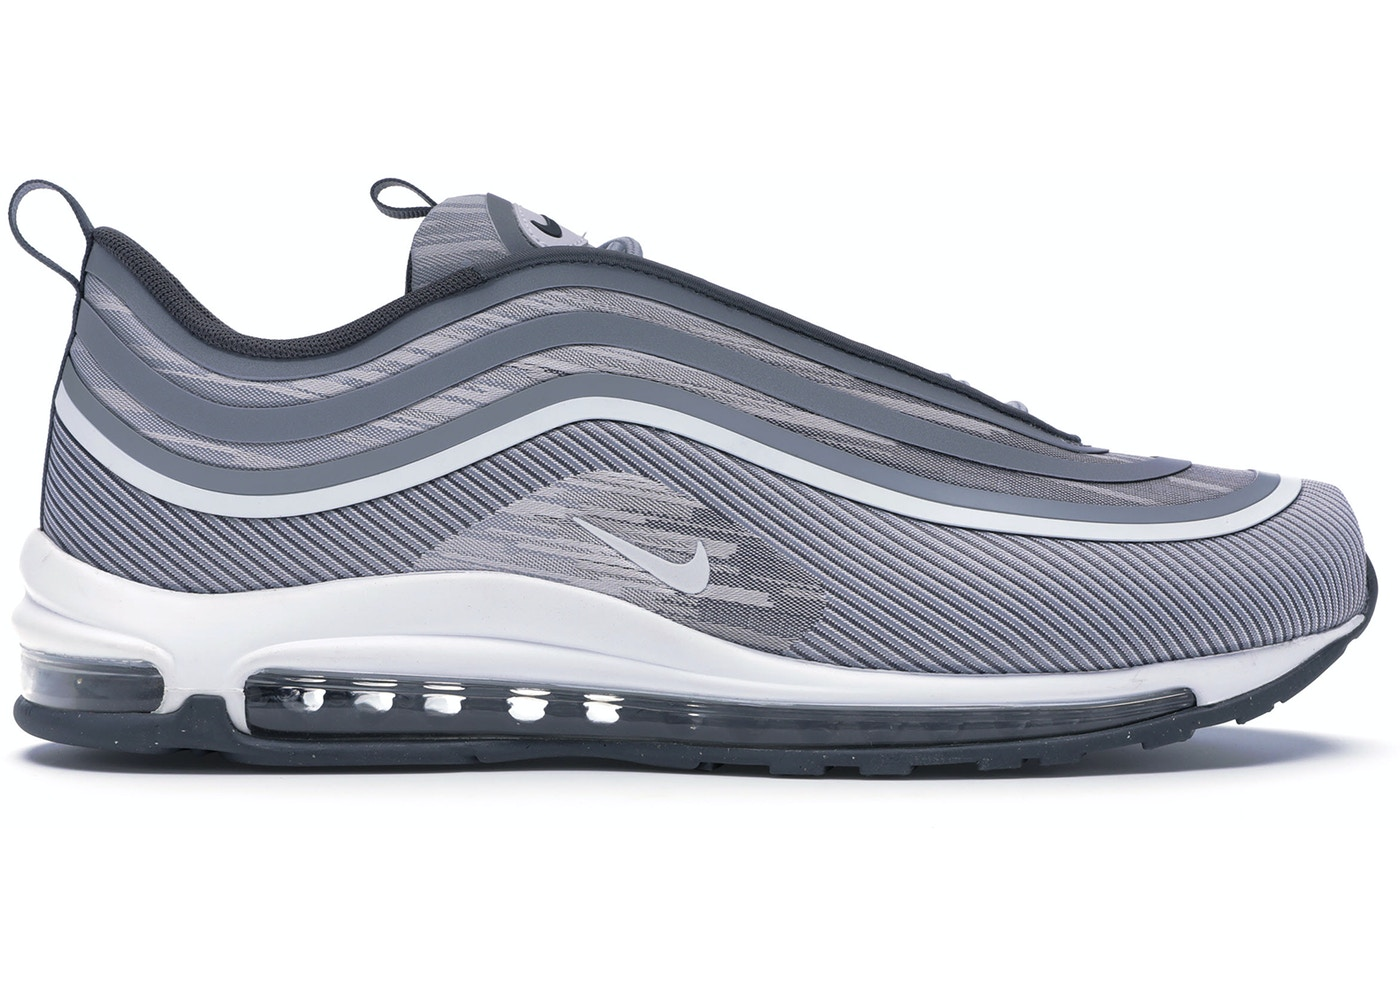 6e1b0a51aaa089 Air Max 97 Ultra 17 Wolf Grey Dark Grey - 918356-007